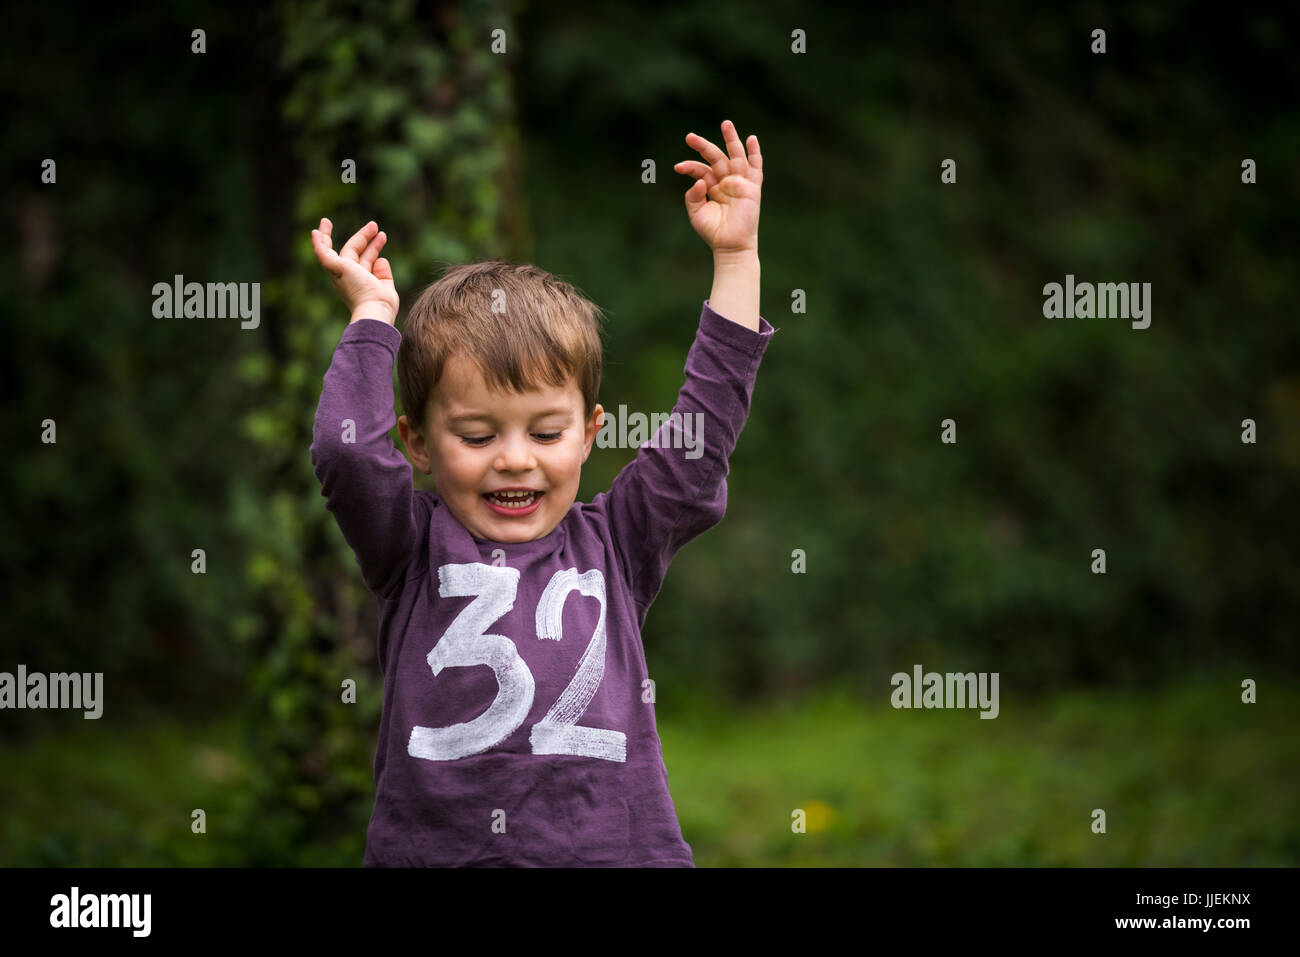 a69059e2c5d48 Happy cute little boy at park with raised hands Stock Photo ...